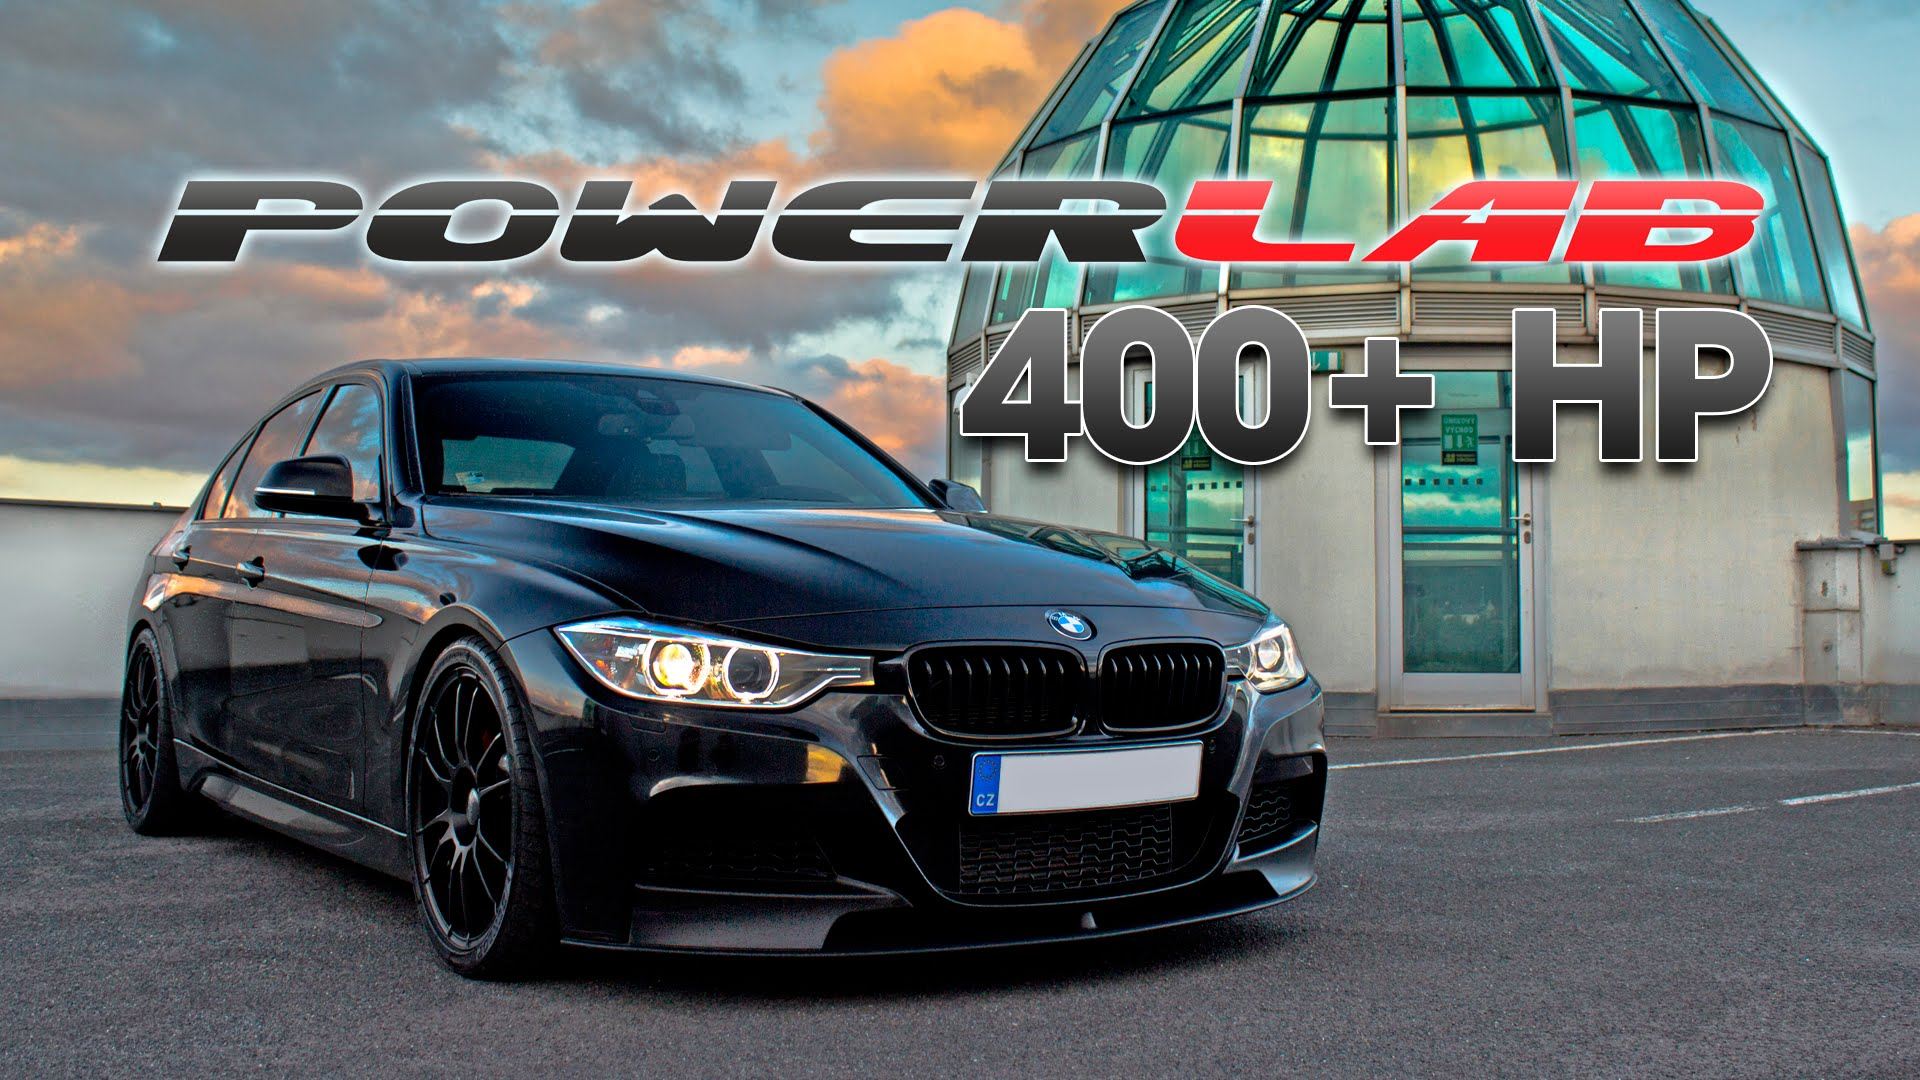 Bmw 335i F30 wallpapers Vehicles HQ Bmw 335i F30 pictures 4K 1920x1080